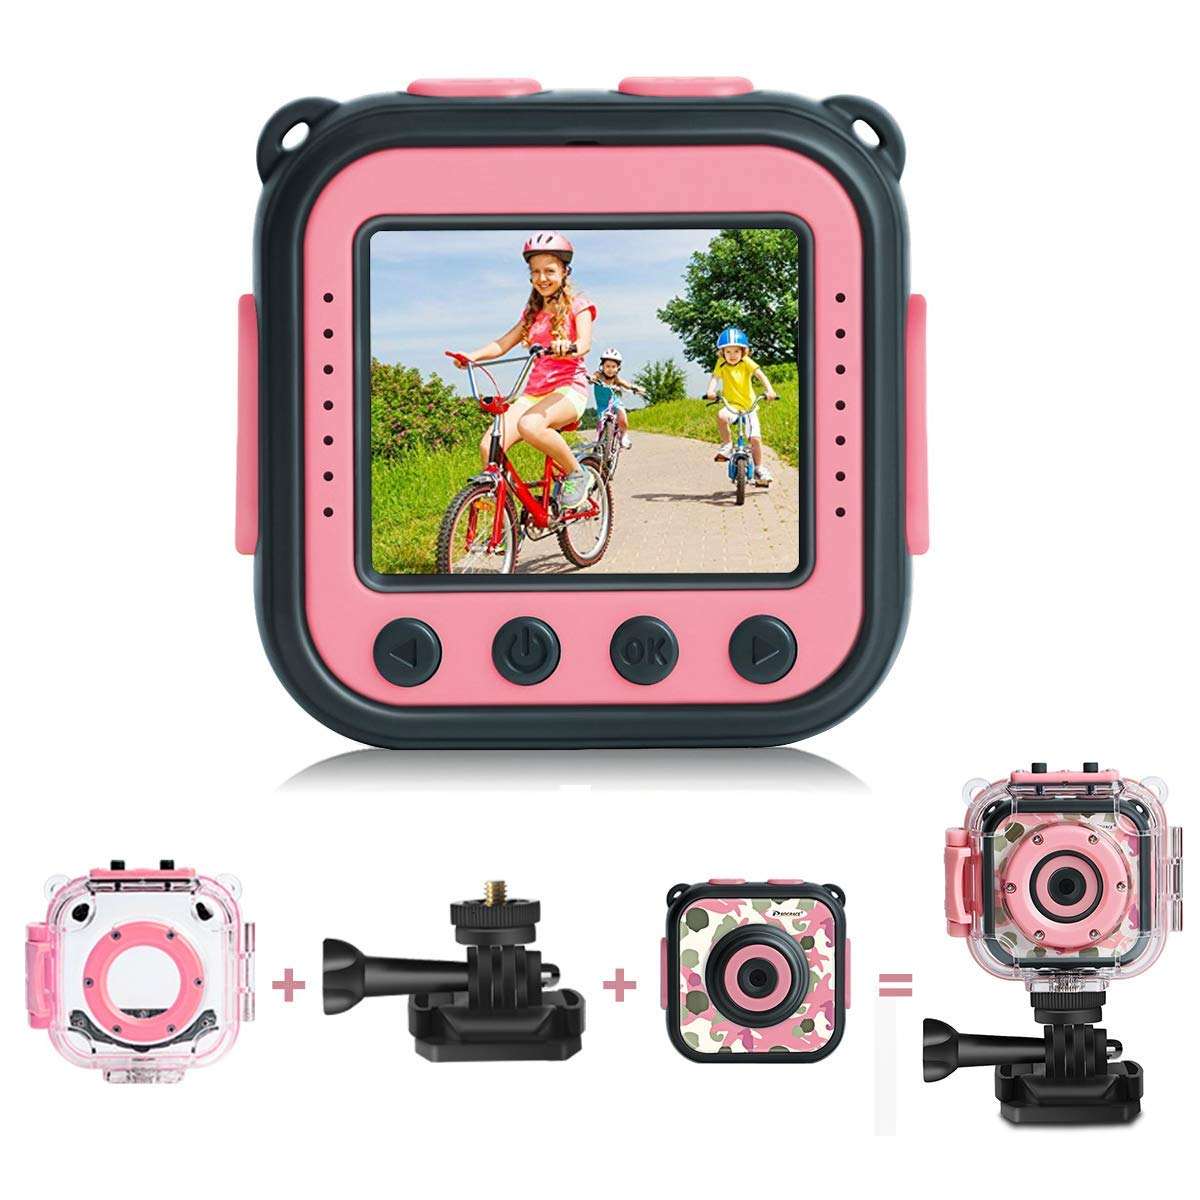 kids action camera pink Upgraded PROGRACE Kids Waterproof Camera Action Video Digital Camera 1080 HD Camcorder for Girls Toys Gifts Build-in Game Pink